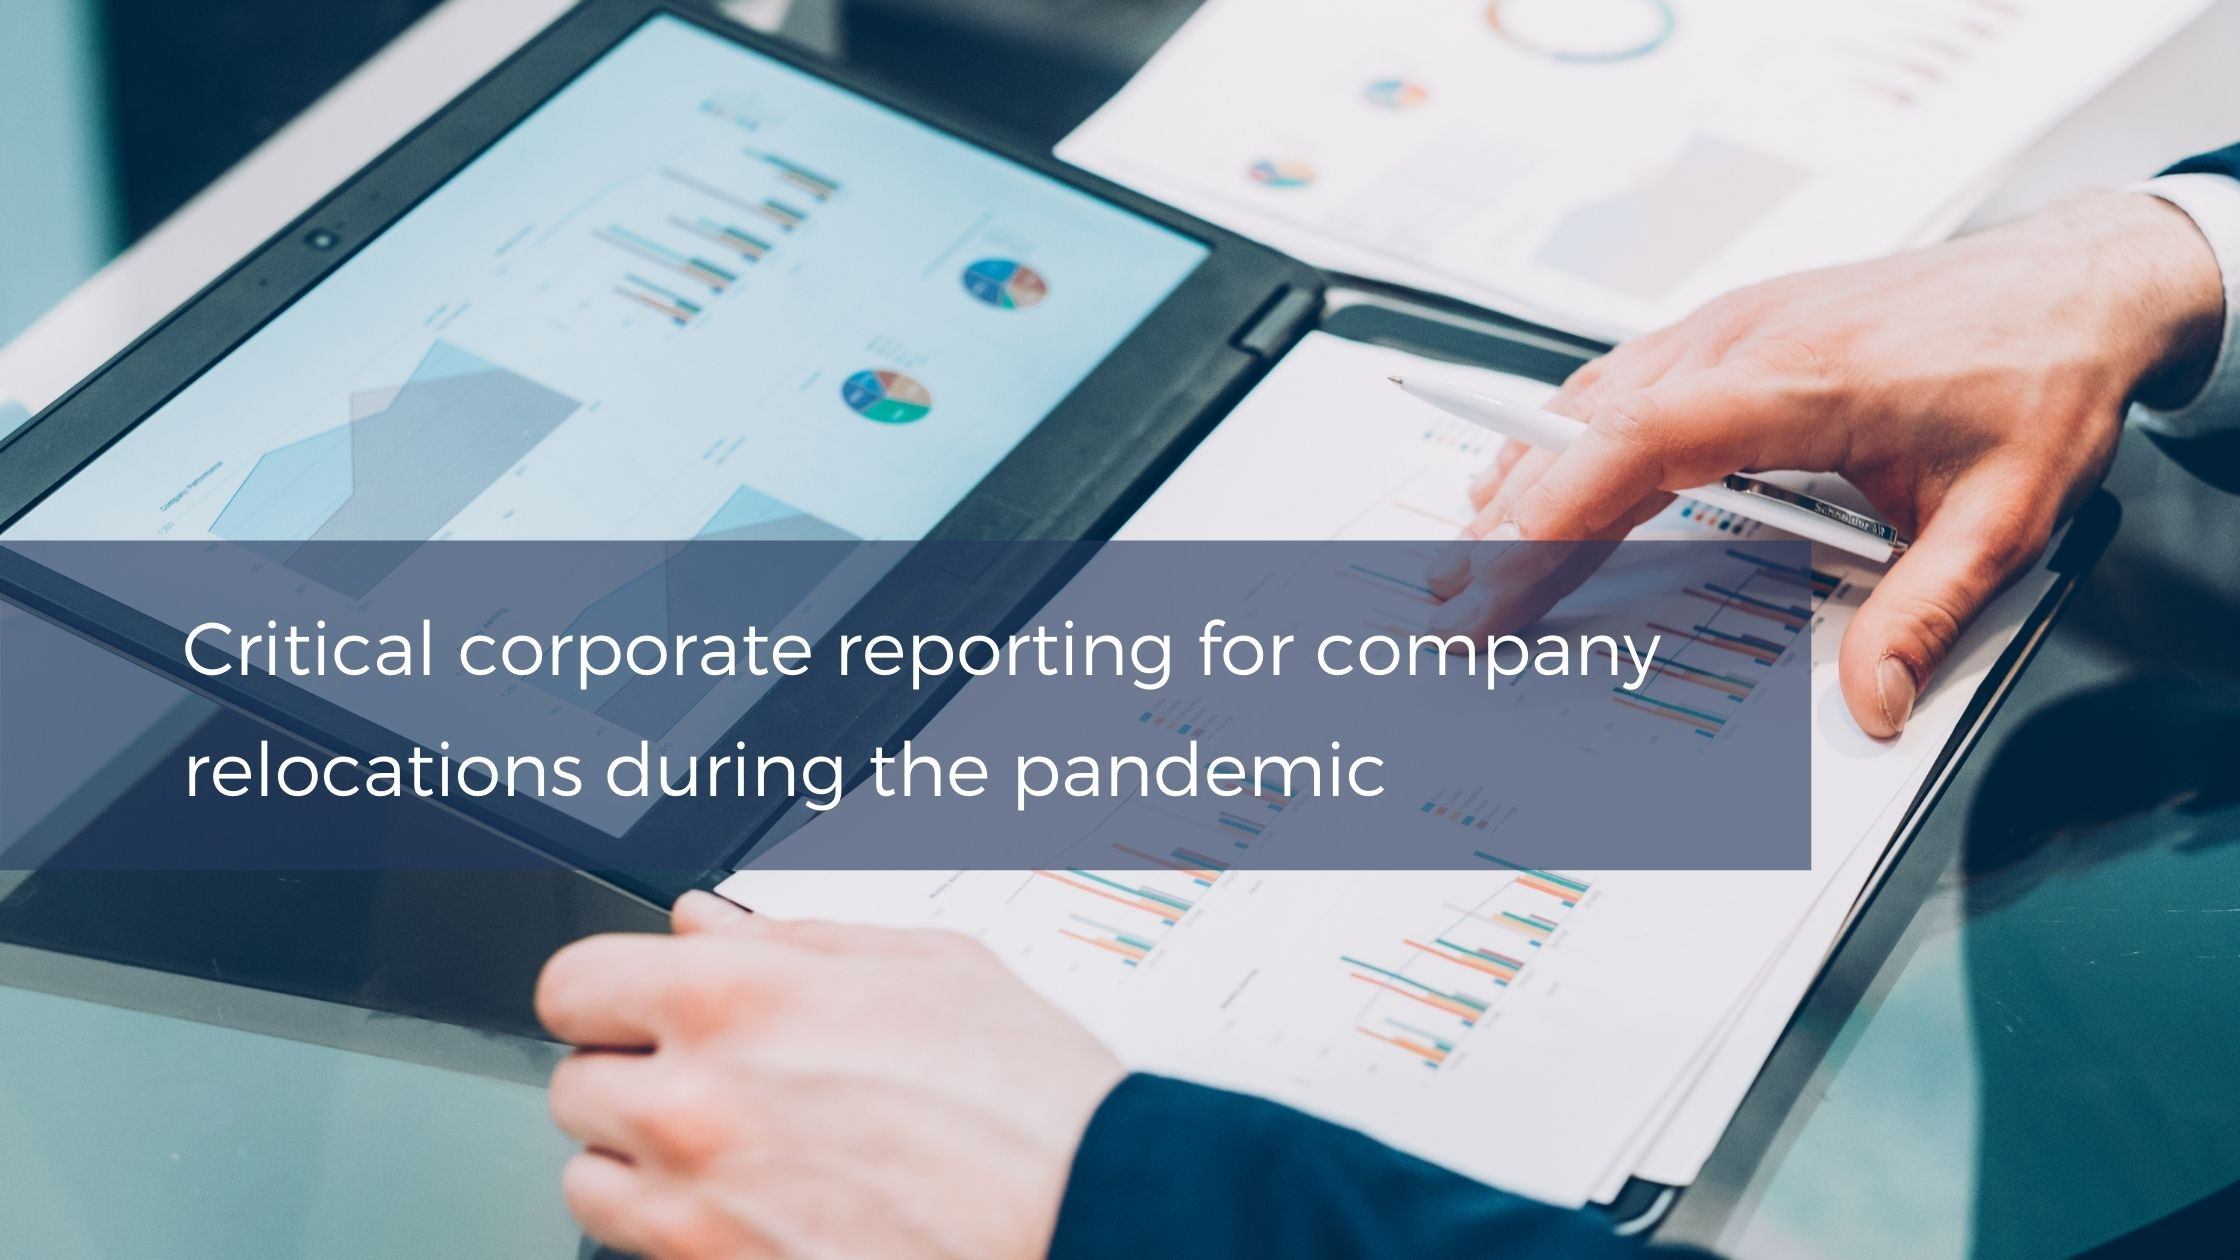 Critical corporate reporting for company relocations during the pandemic